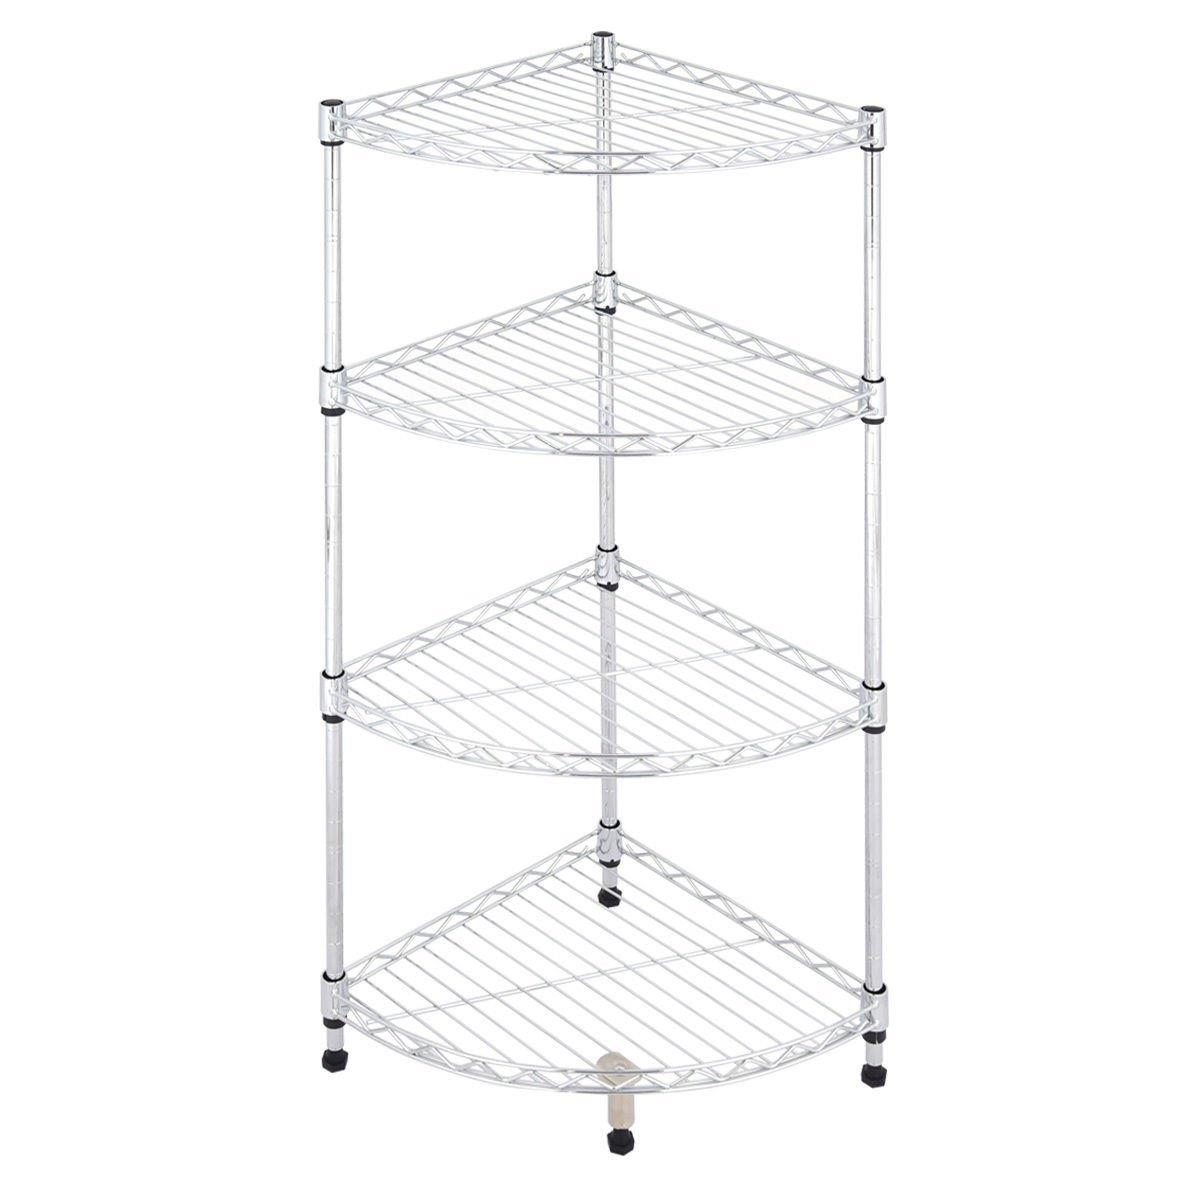 Ktaxon 4 Tier Corner Kitchen Shelf Display Rack Bathroom